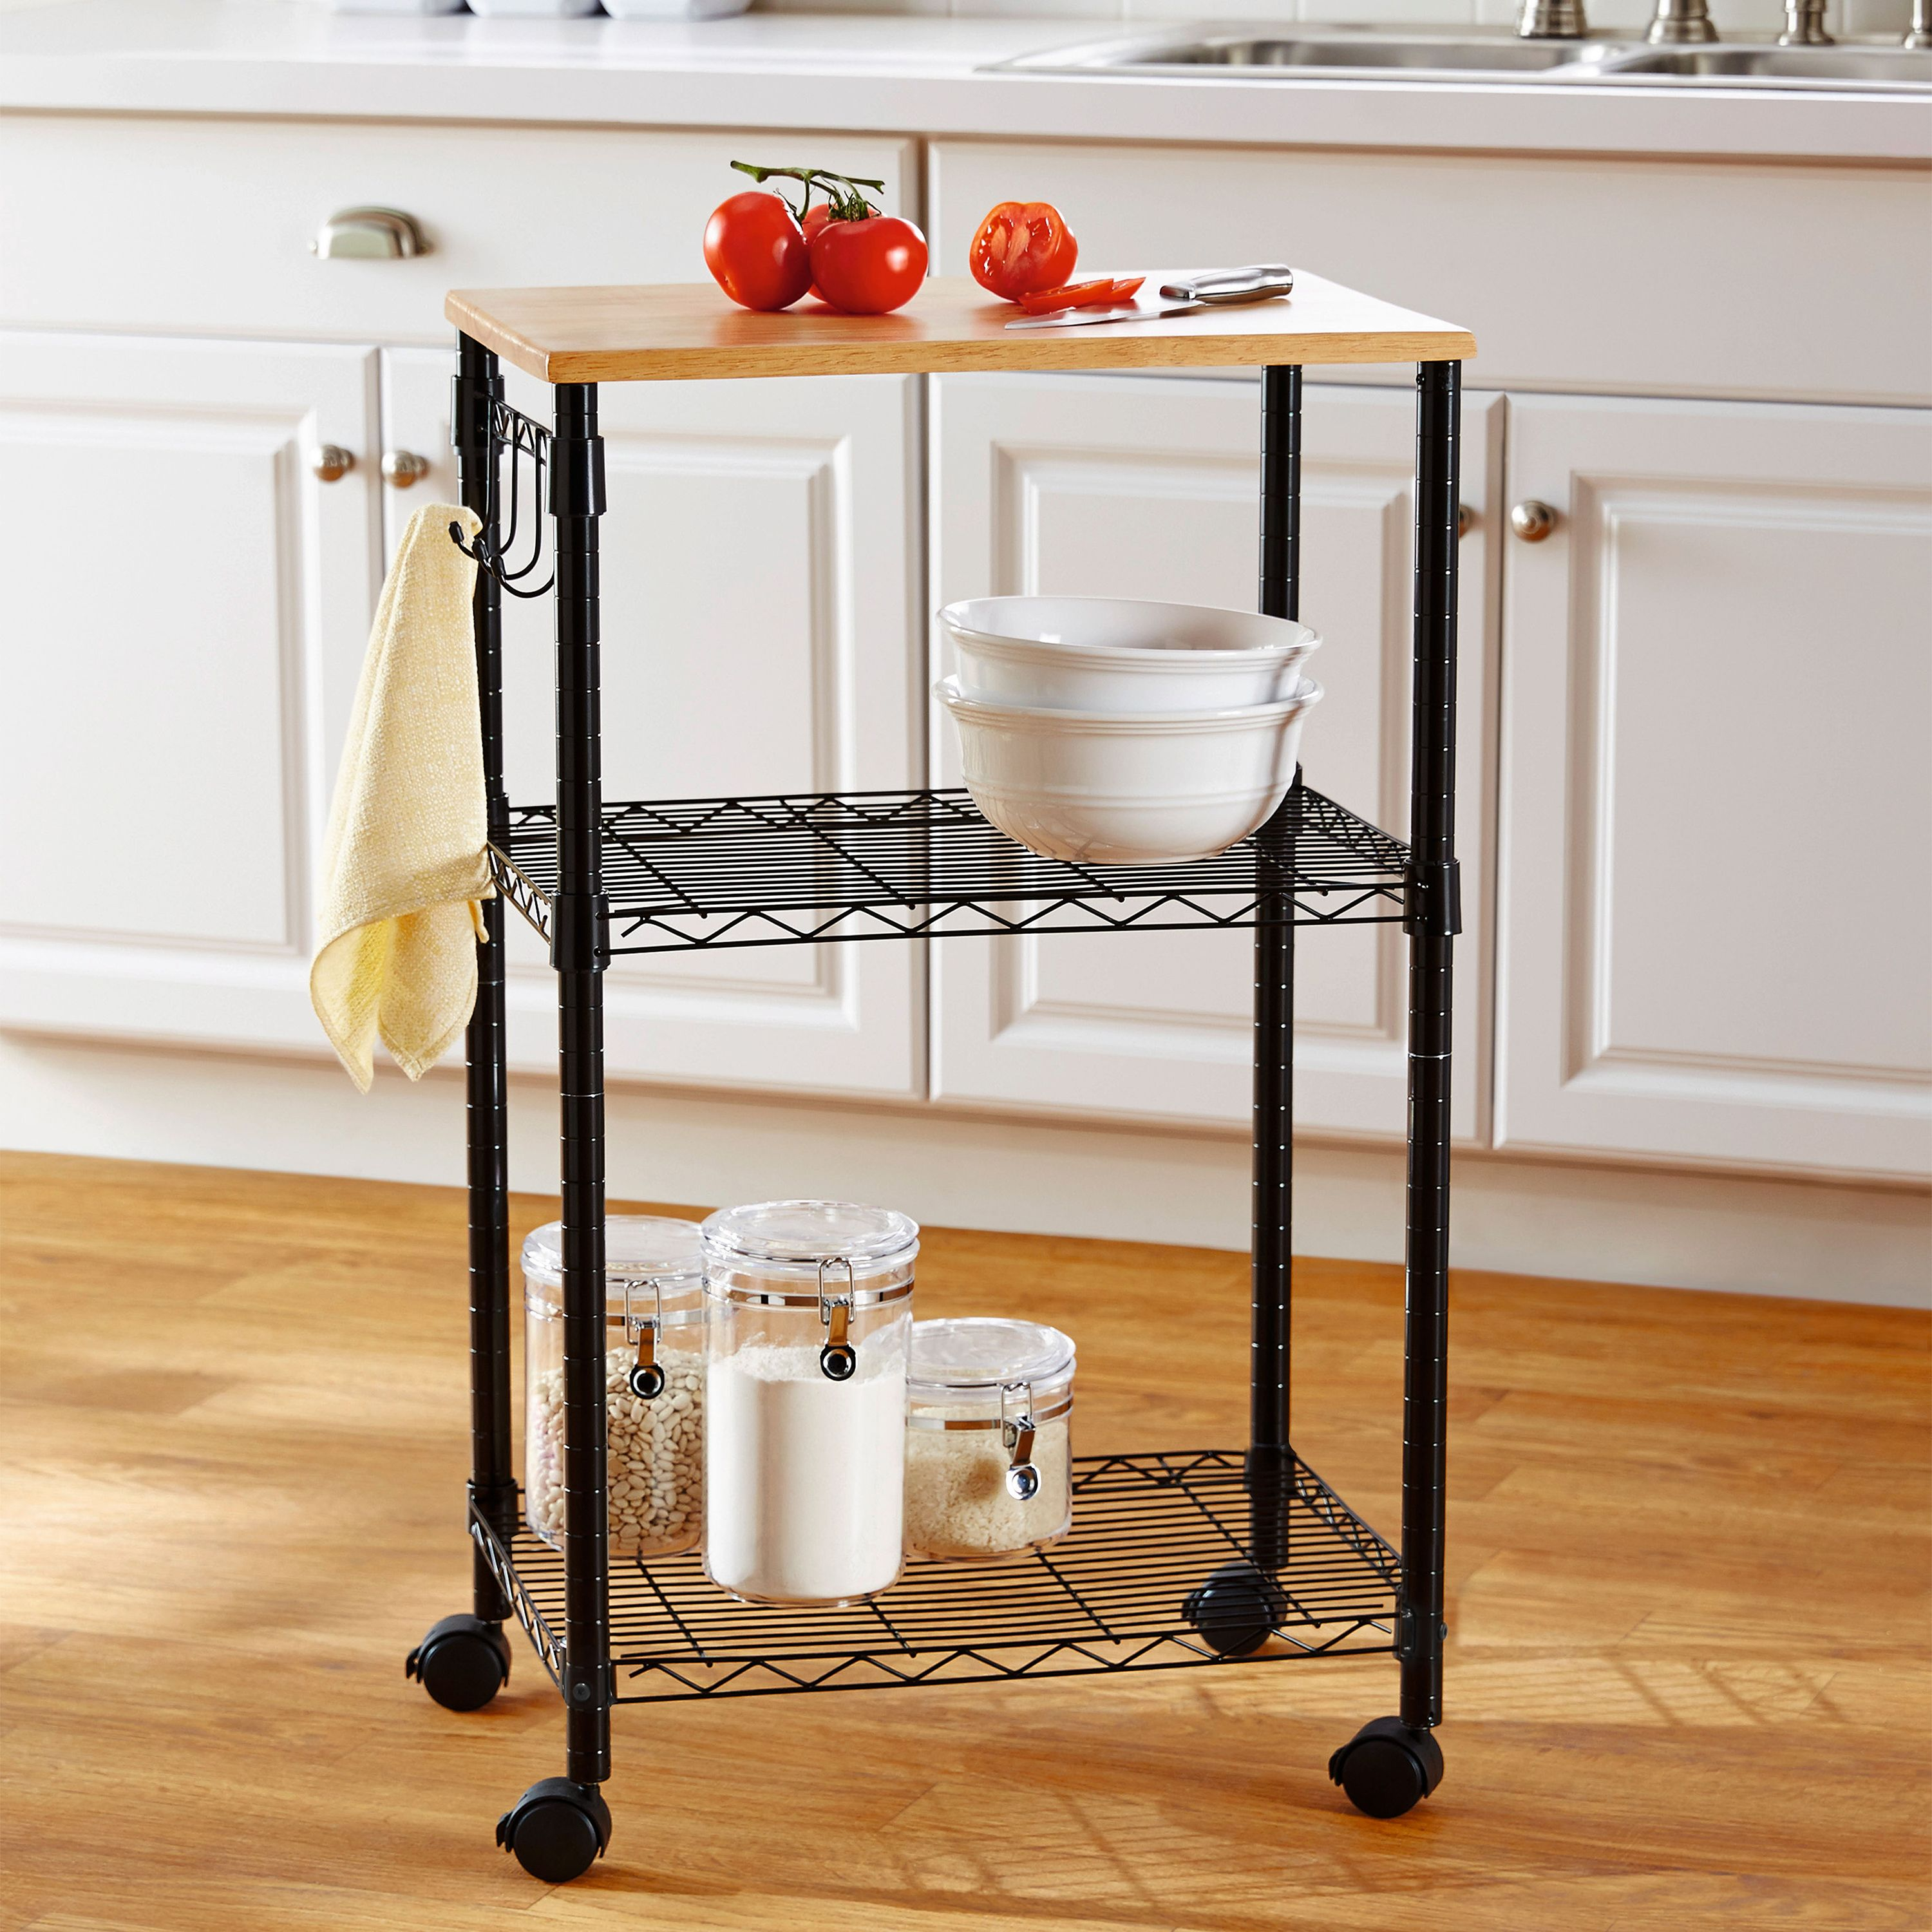 Mainstays Multi-Purpose Kitchen Cart with Adjustable Shelves- Black